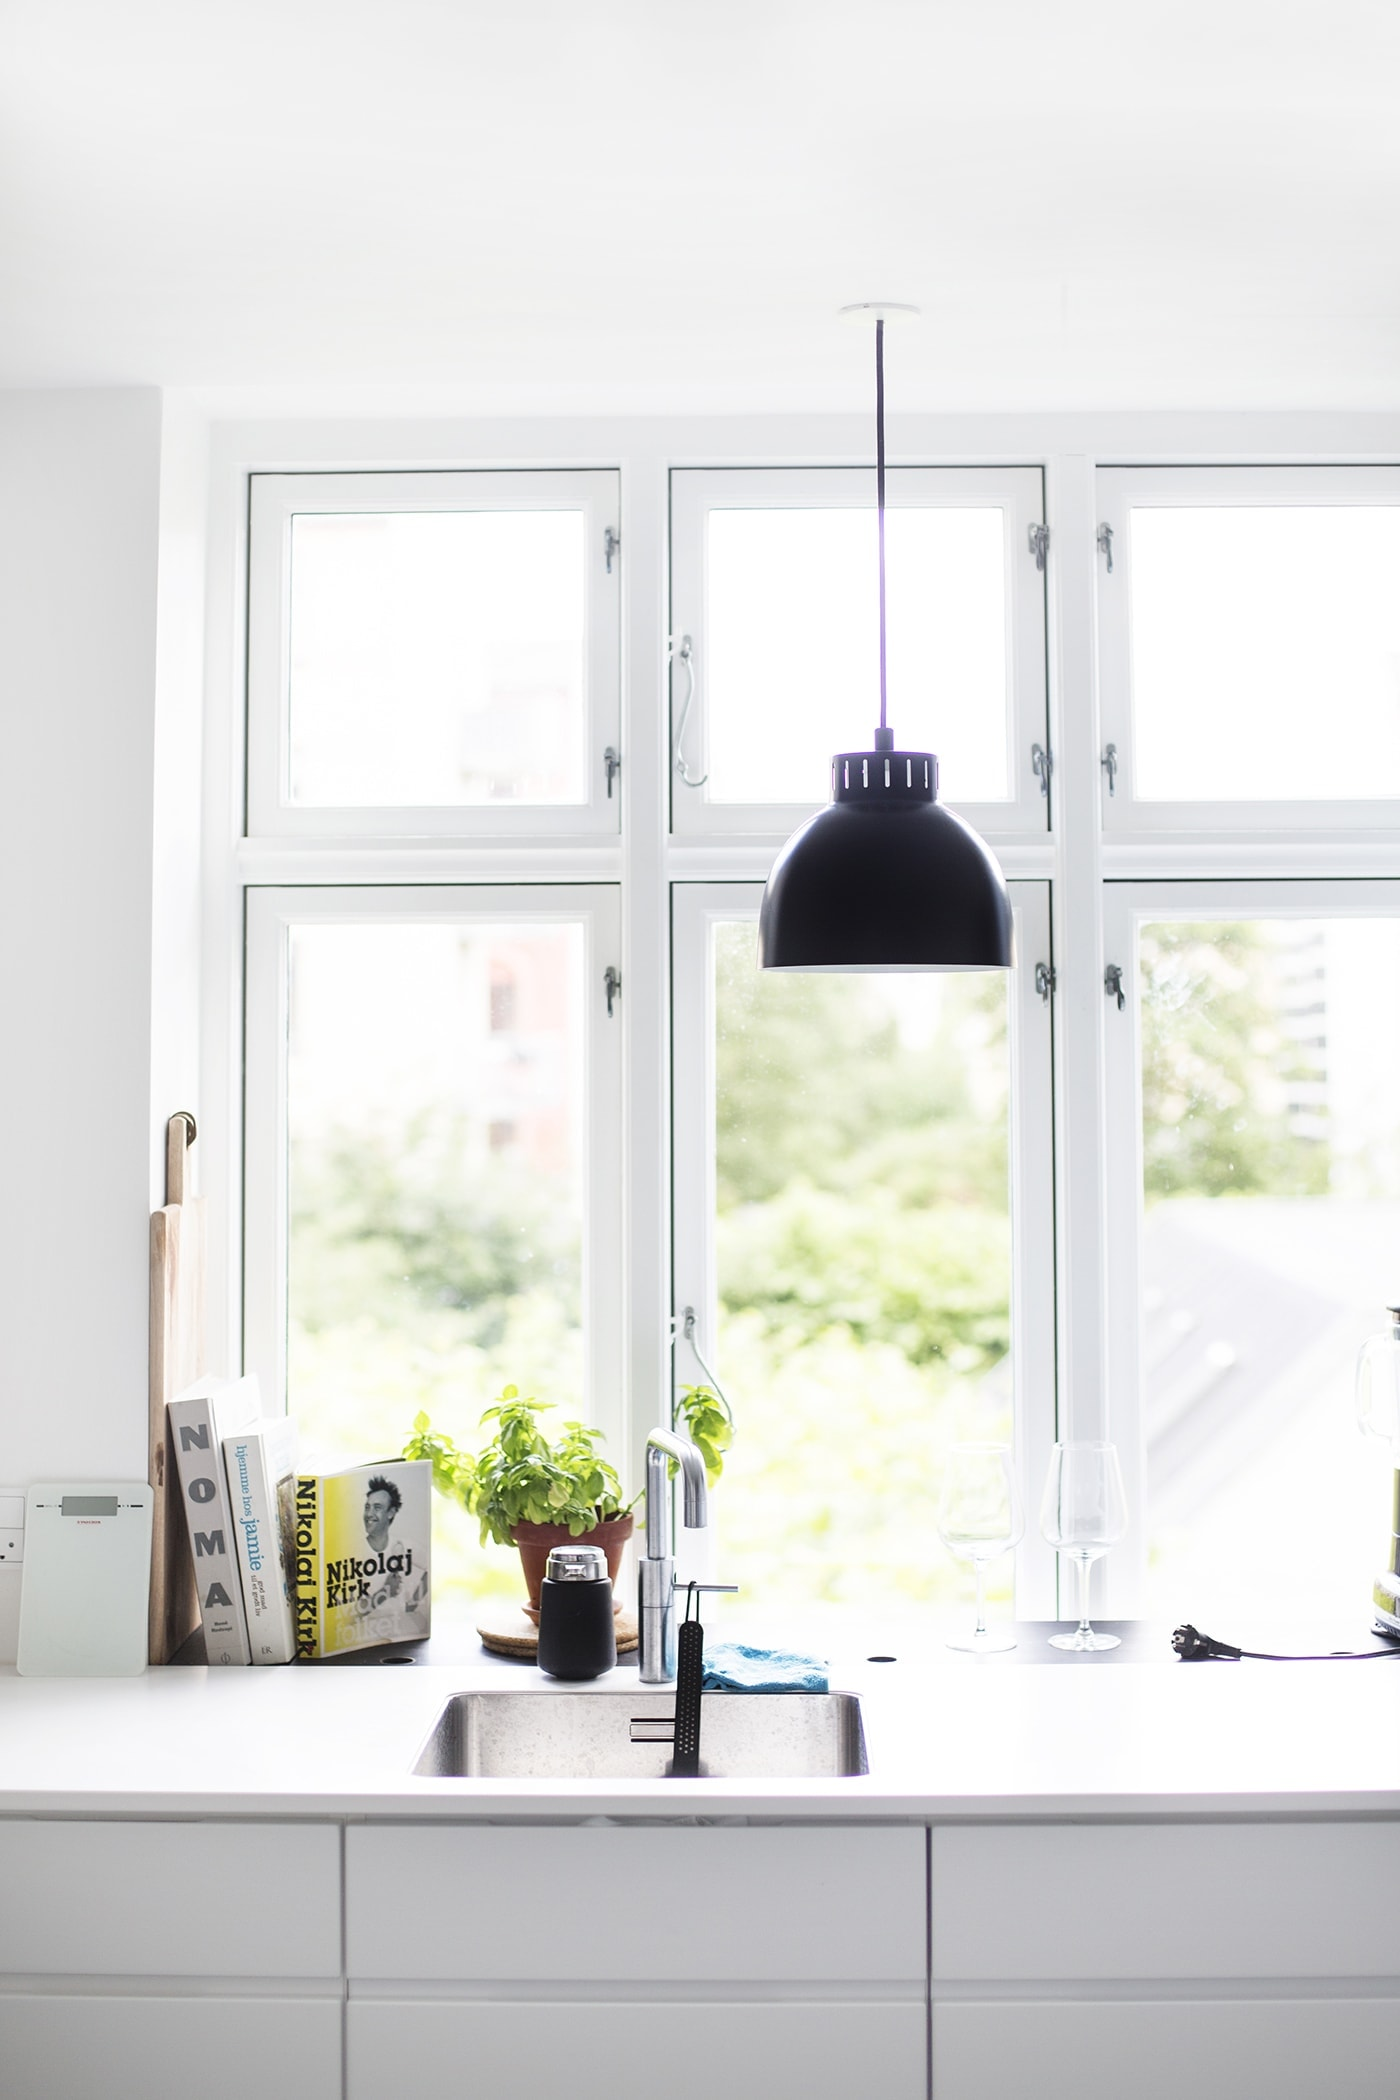 Copenhagen | wanderlust | air bnb kitchen 1